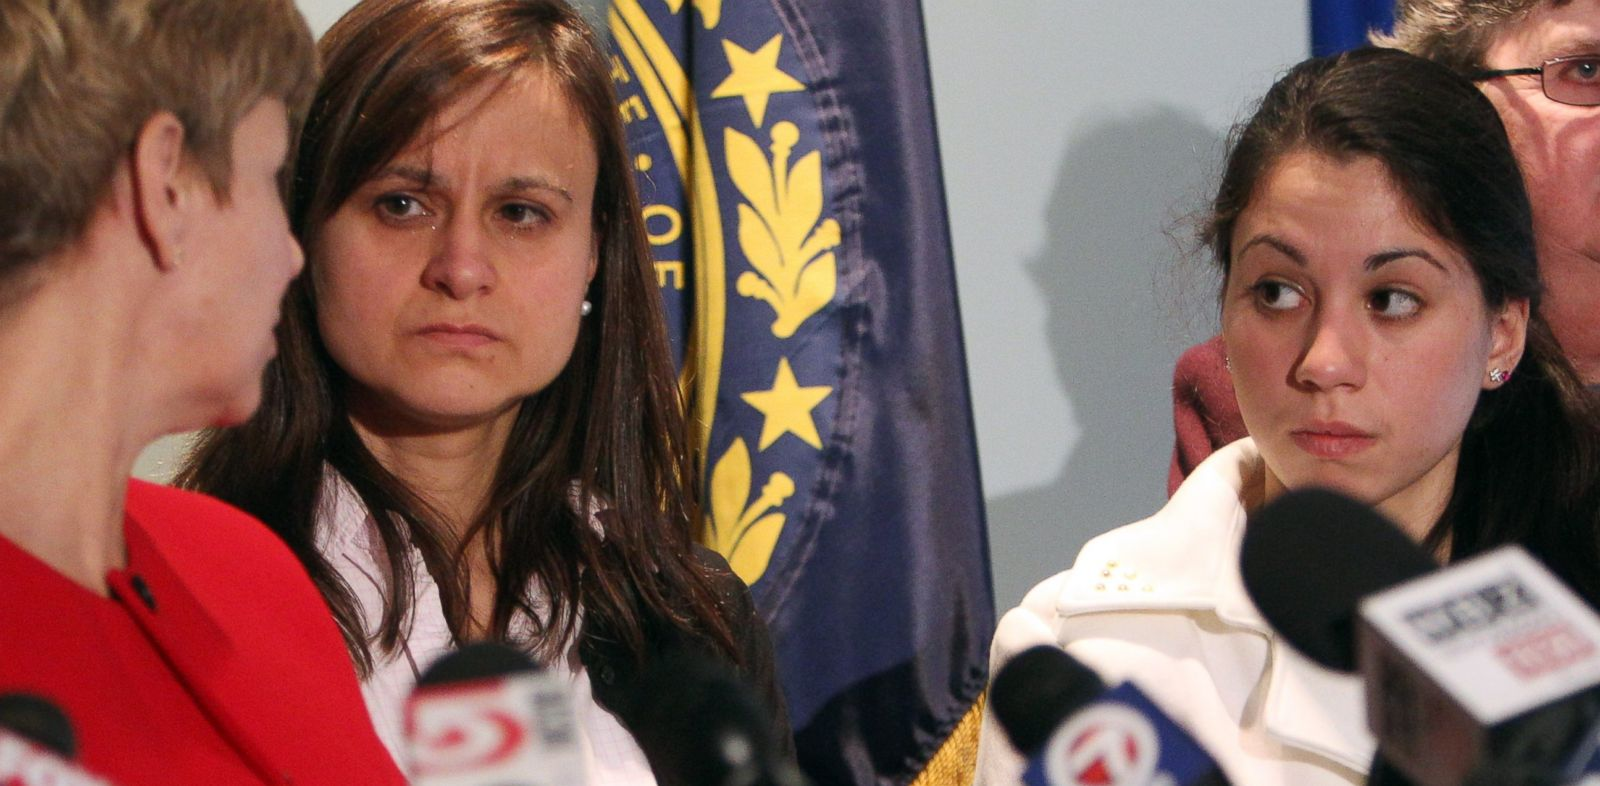 PHOTO: Zenya Hernandez, center, and her daughter, Sarah Hernandez look at Senior Assistant Attorney General Jane Young, during a news conference on Dec. 6, 2013 in Concord, N.H.